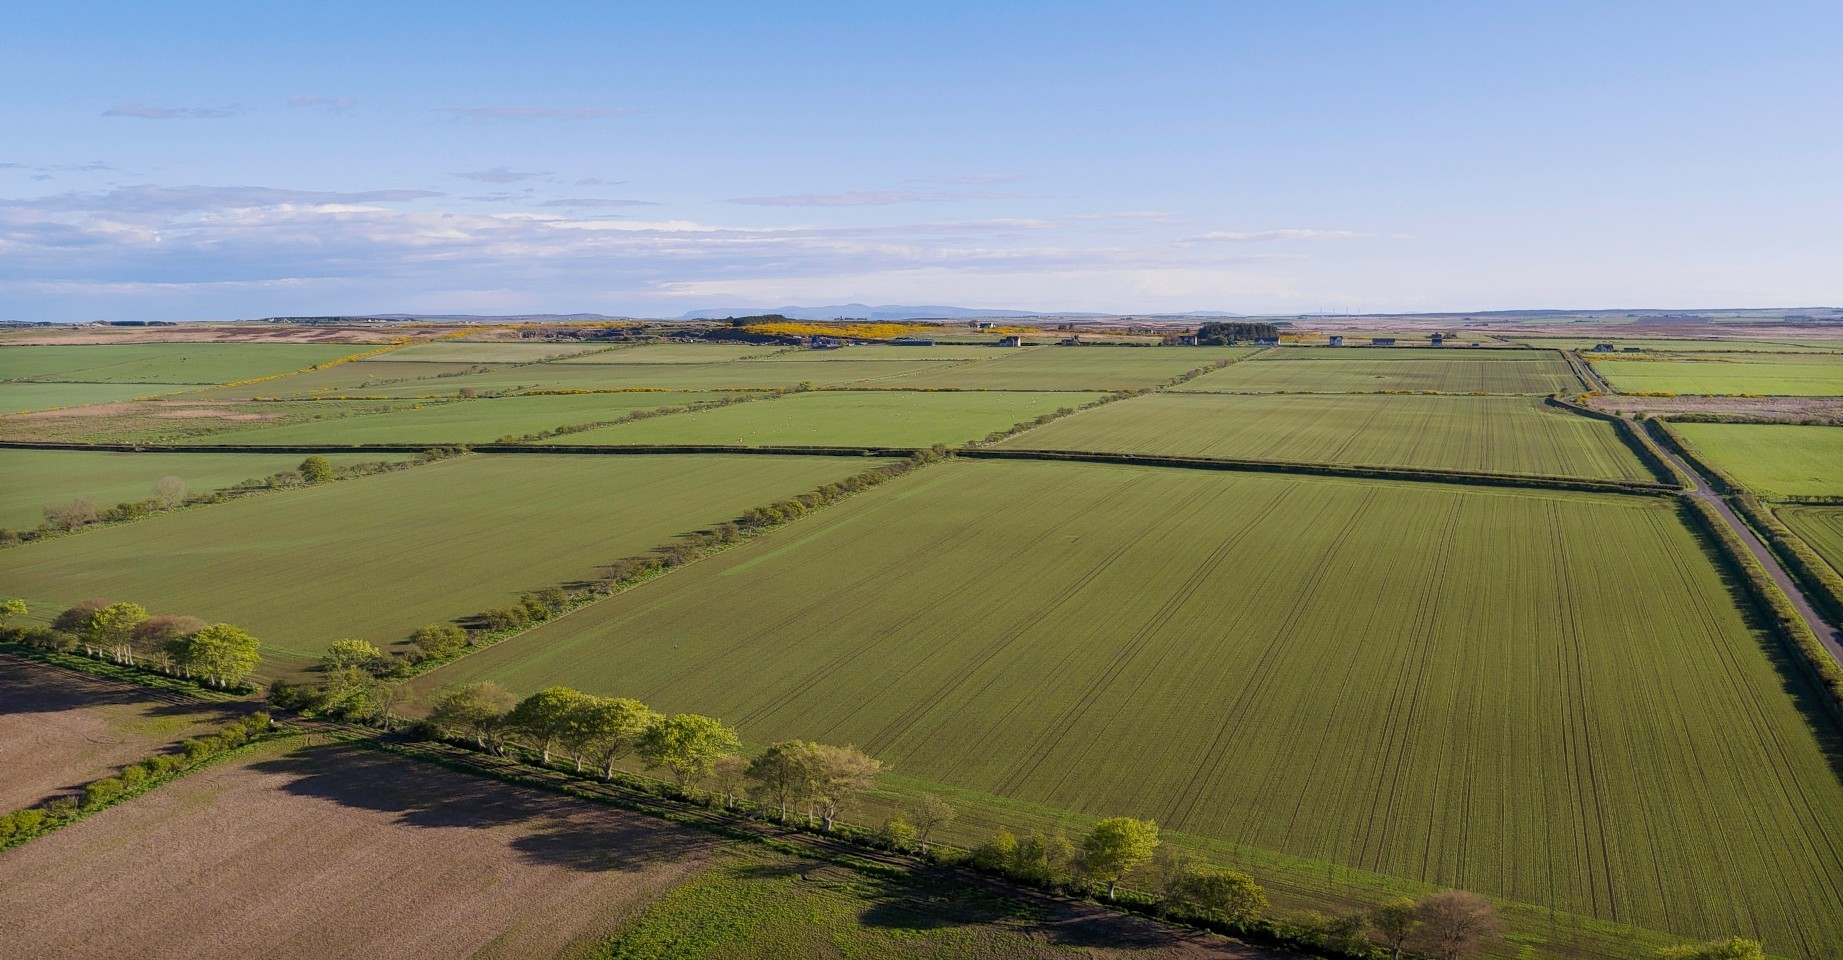 Some of the farmland at Watten Mains